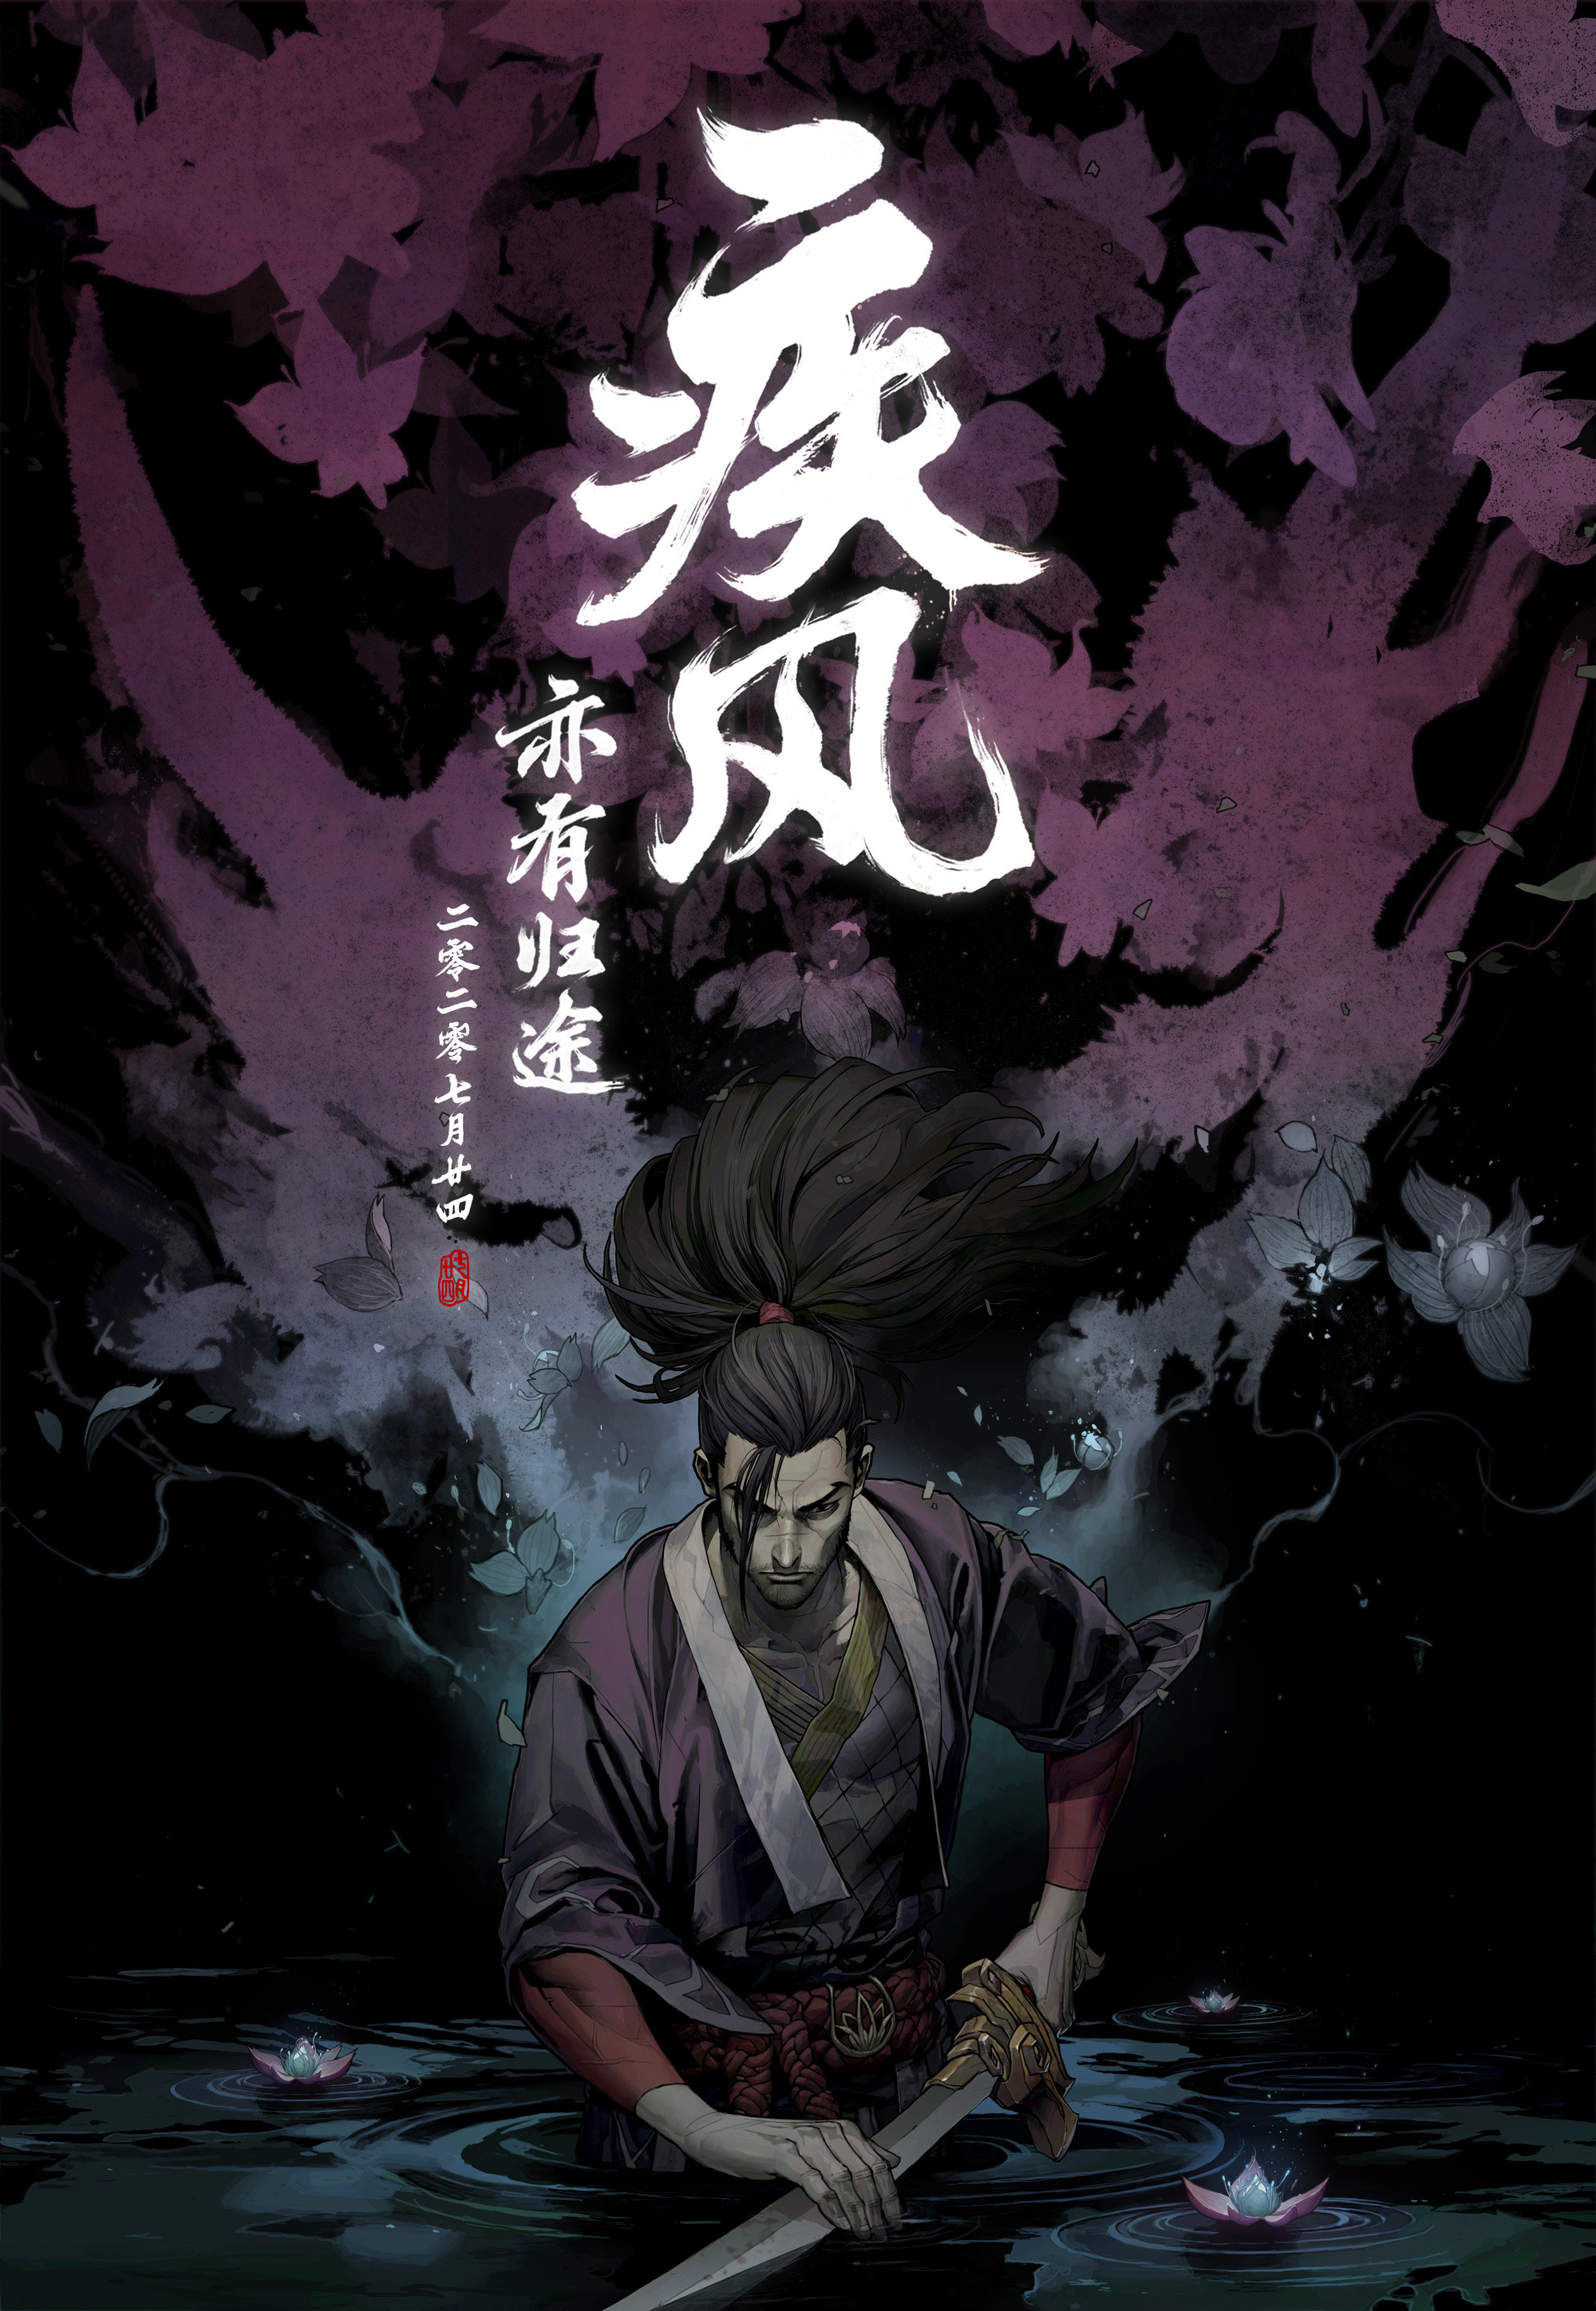 Yasuo Yone Kin of the Stained Blade 02